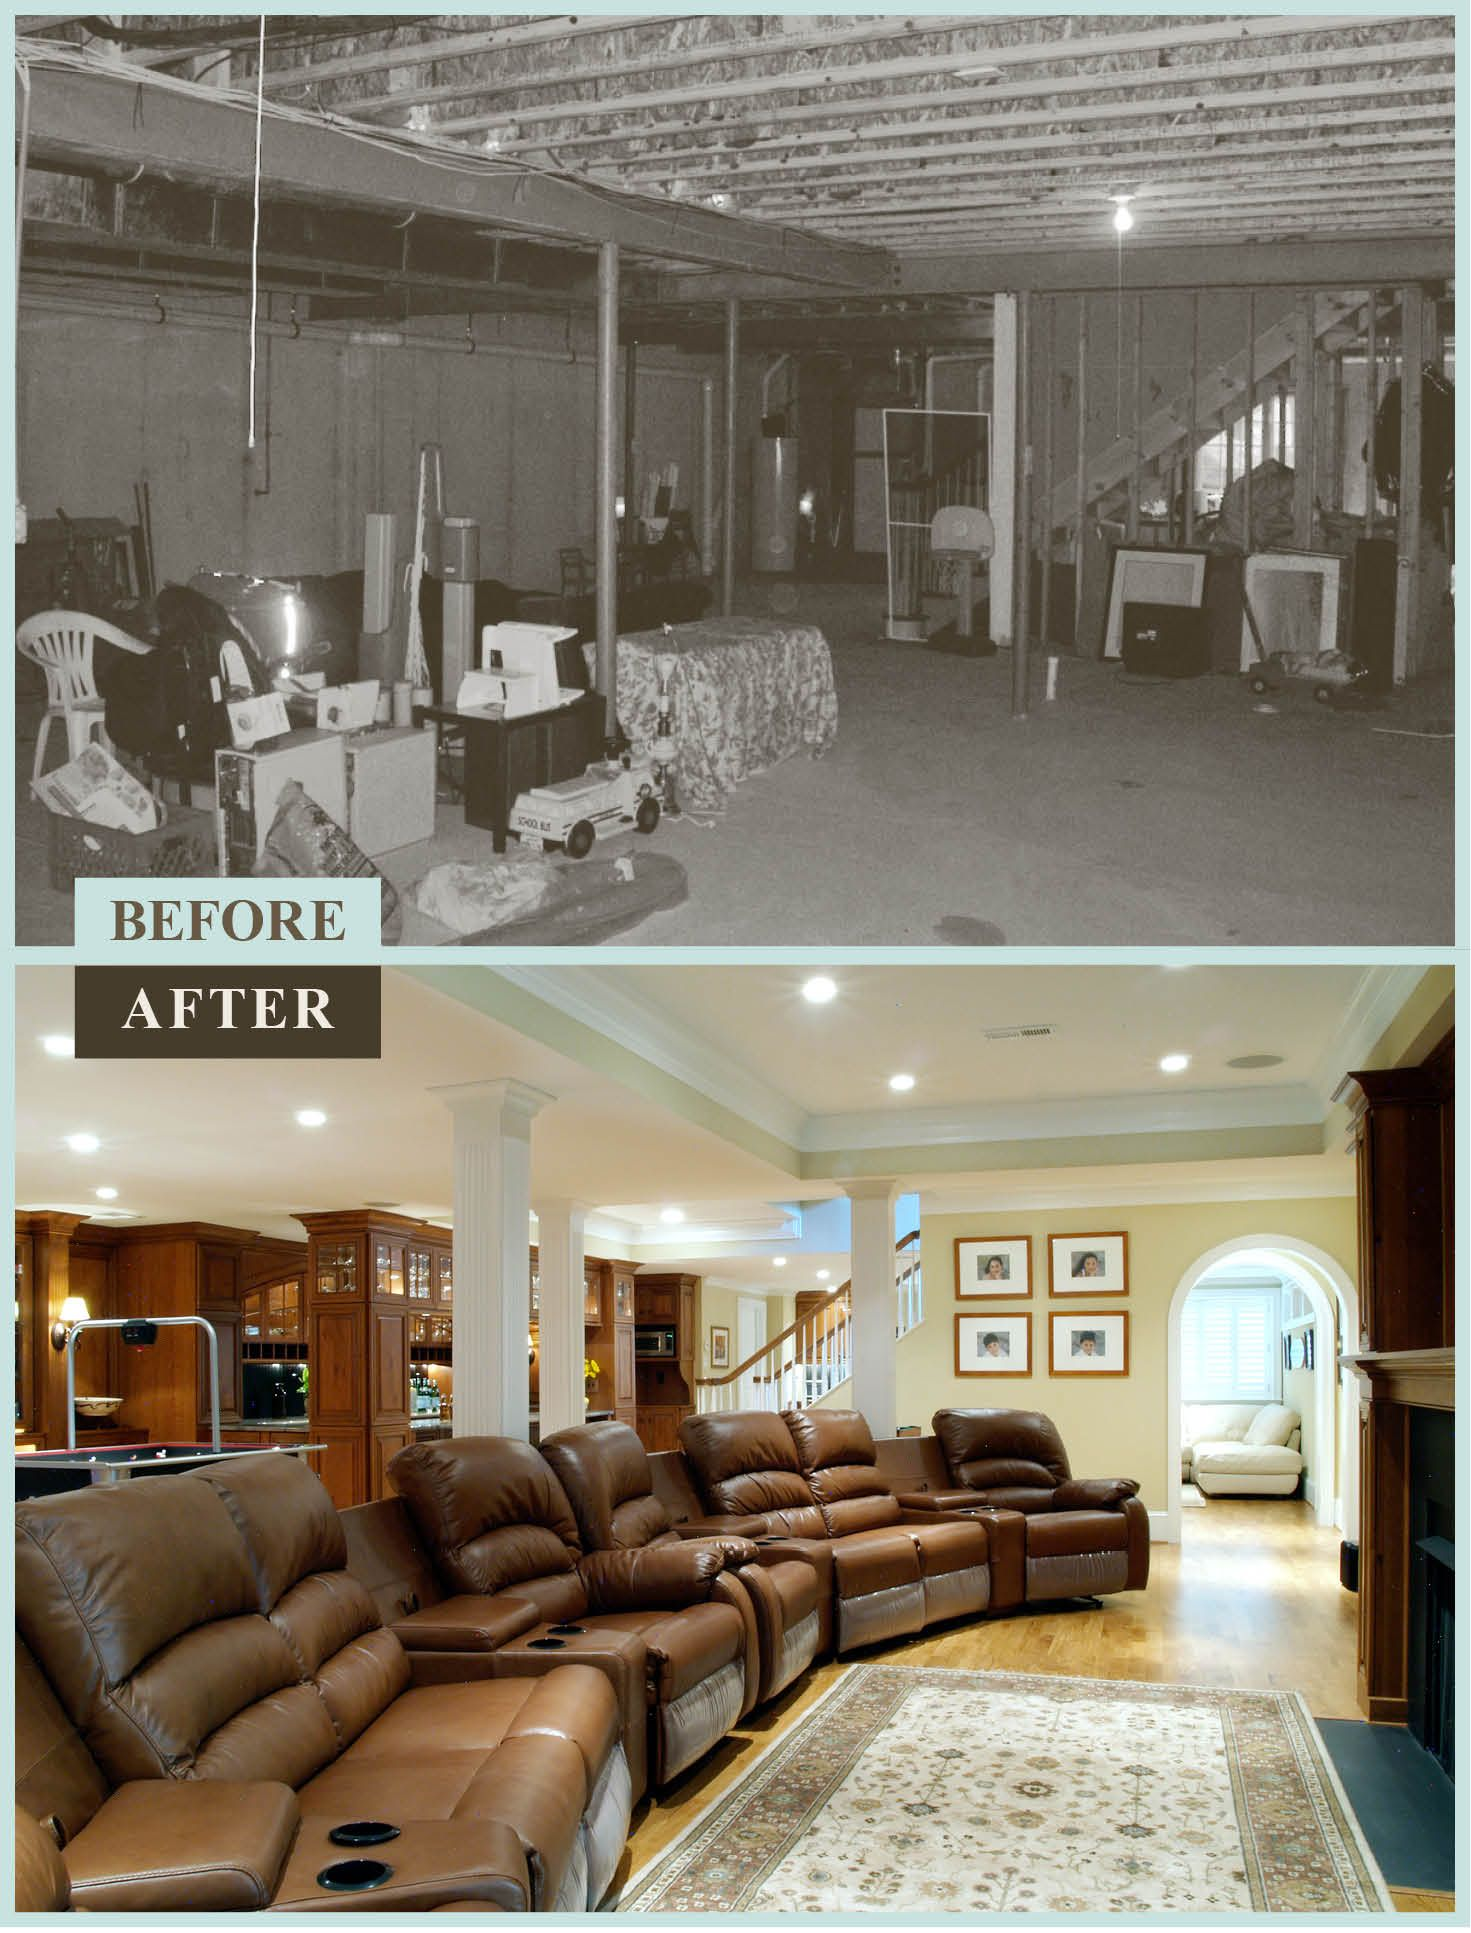 Basement Apartment Before And After. Basements Before And After  Steeplechase Lane in Malvern PA The old basement